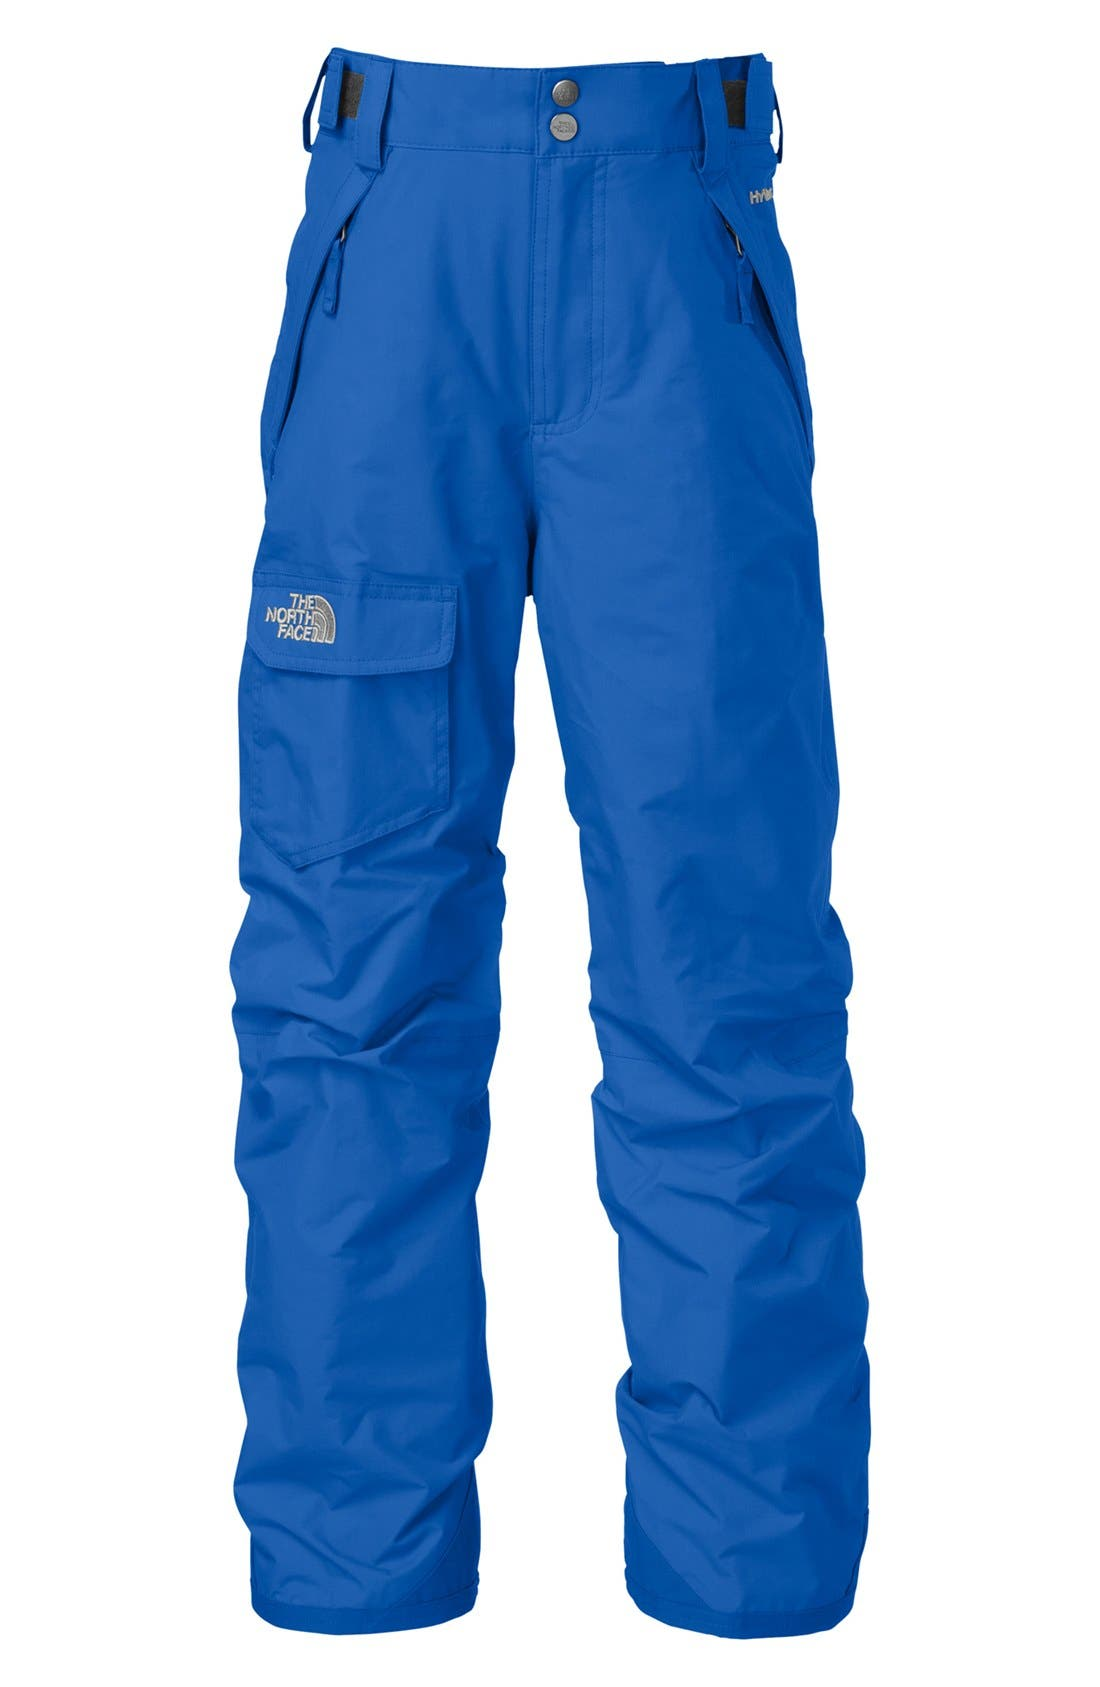 Main Image - The North Face 'Freedom' Insulated Snow Pants (Big Boys)